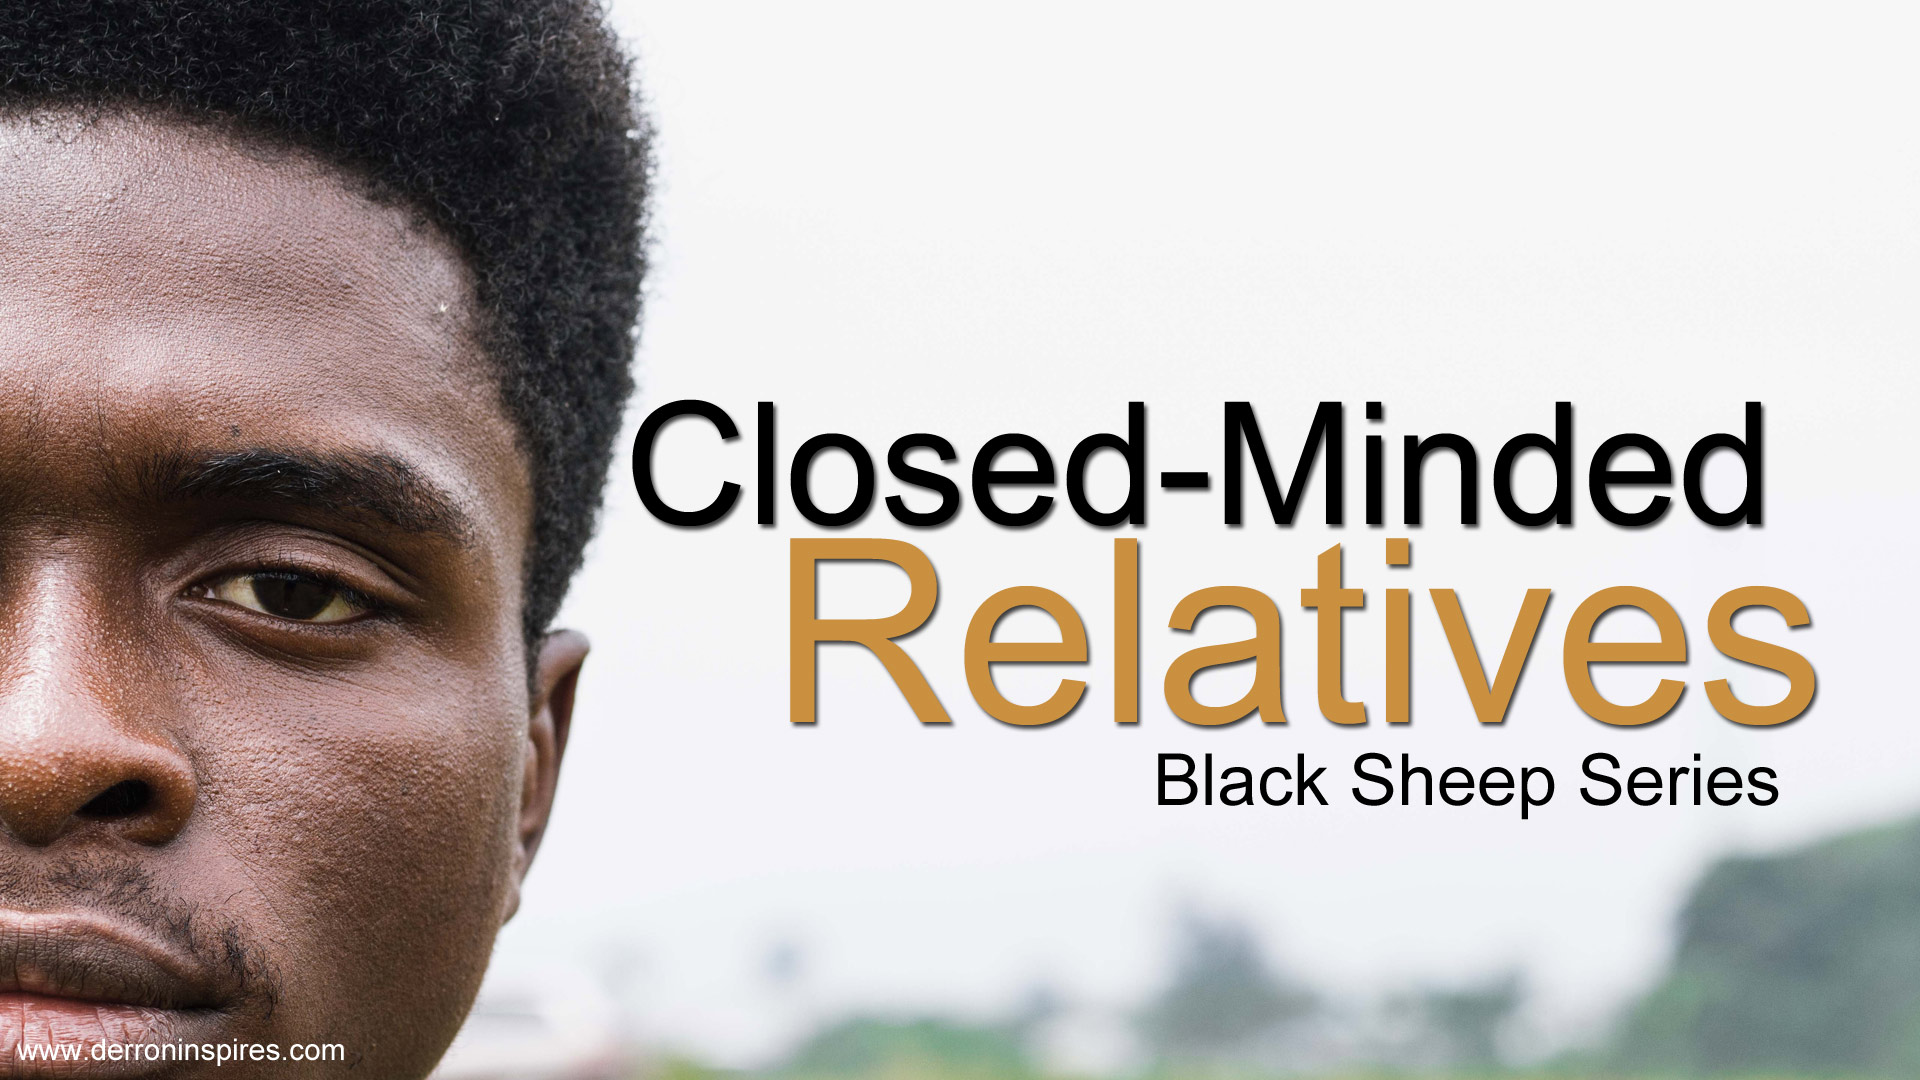 Closed-Minded Relatives